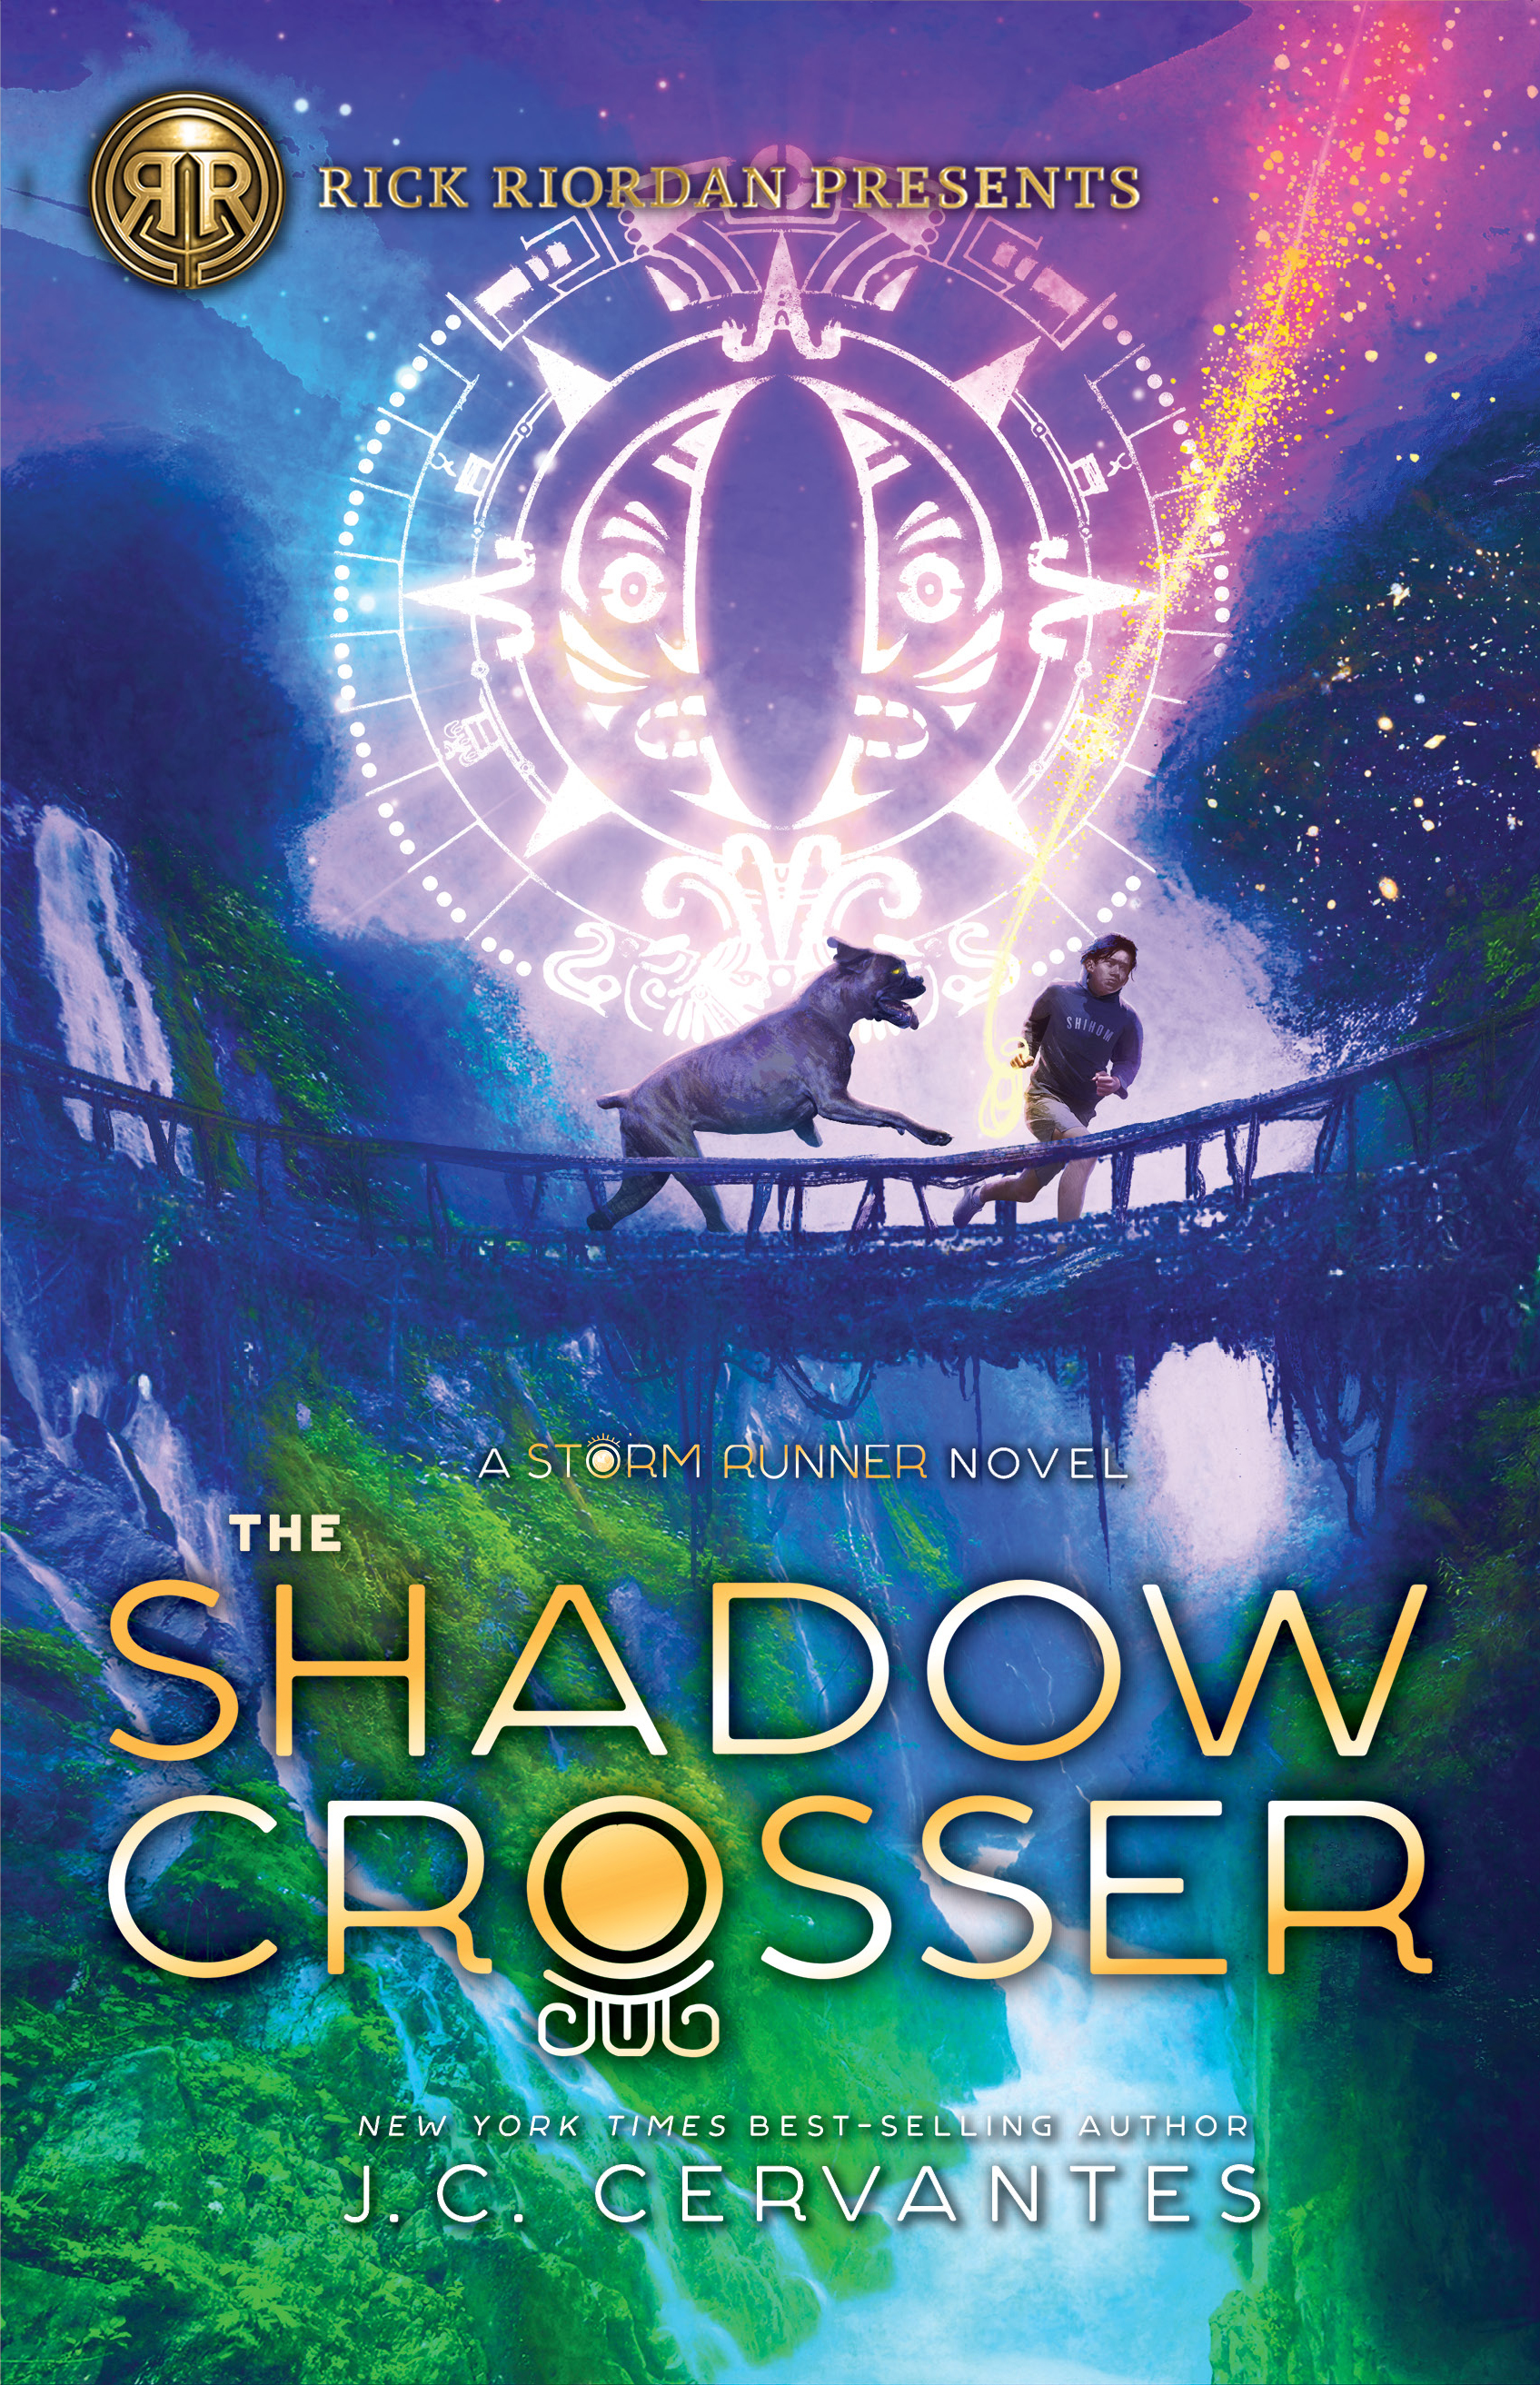 Image result for SHADOW CROSSER BOOK COVER